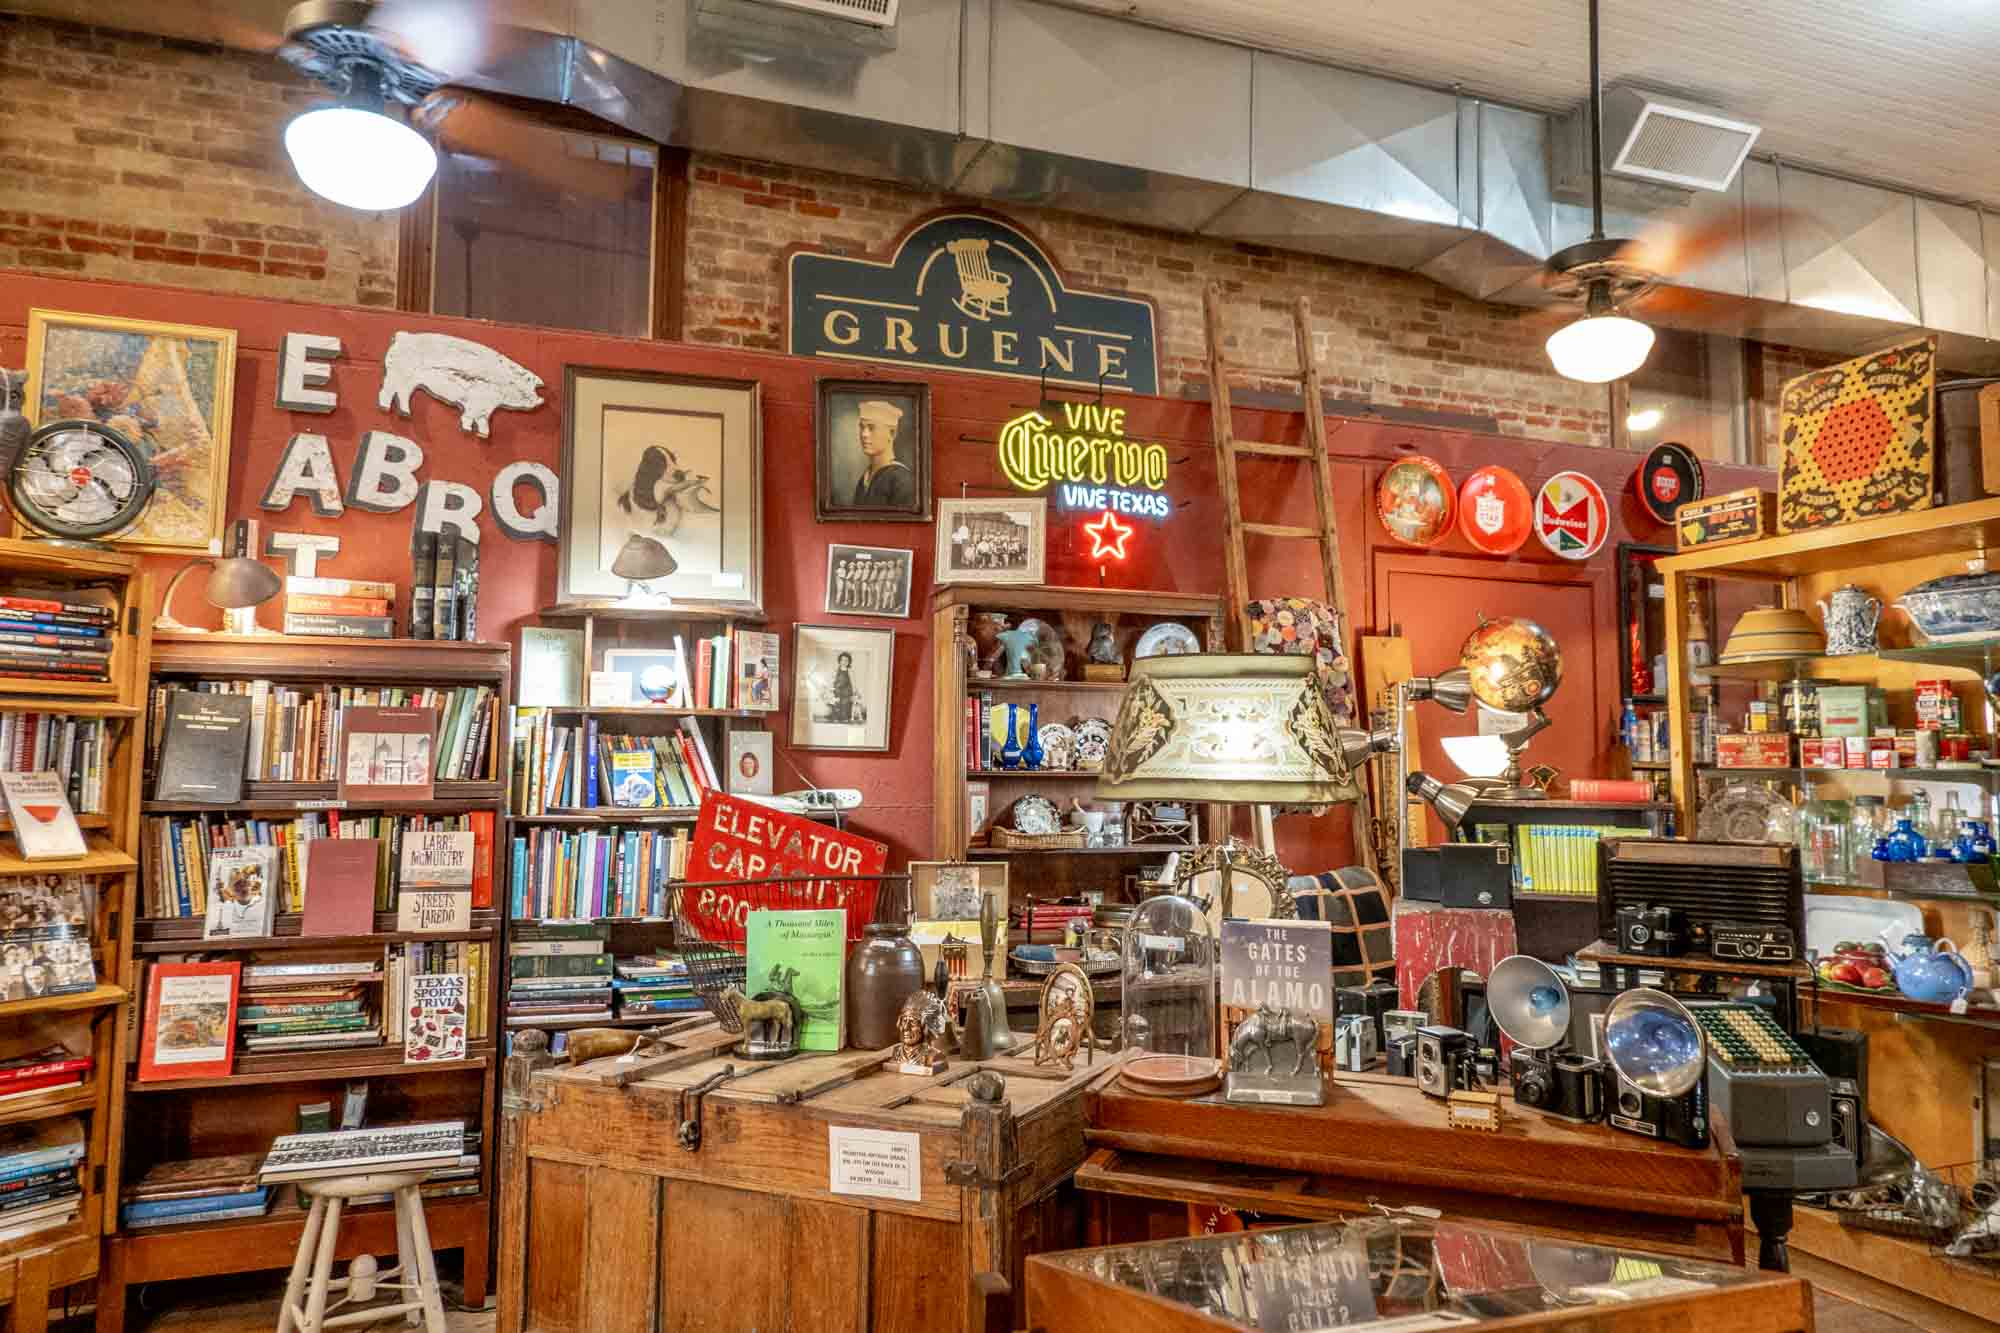 Room filled with books, glassware, signs, and other antiques for sale